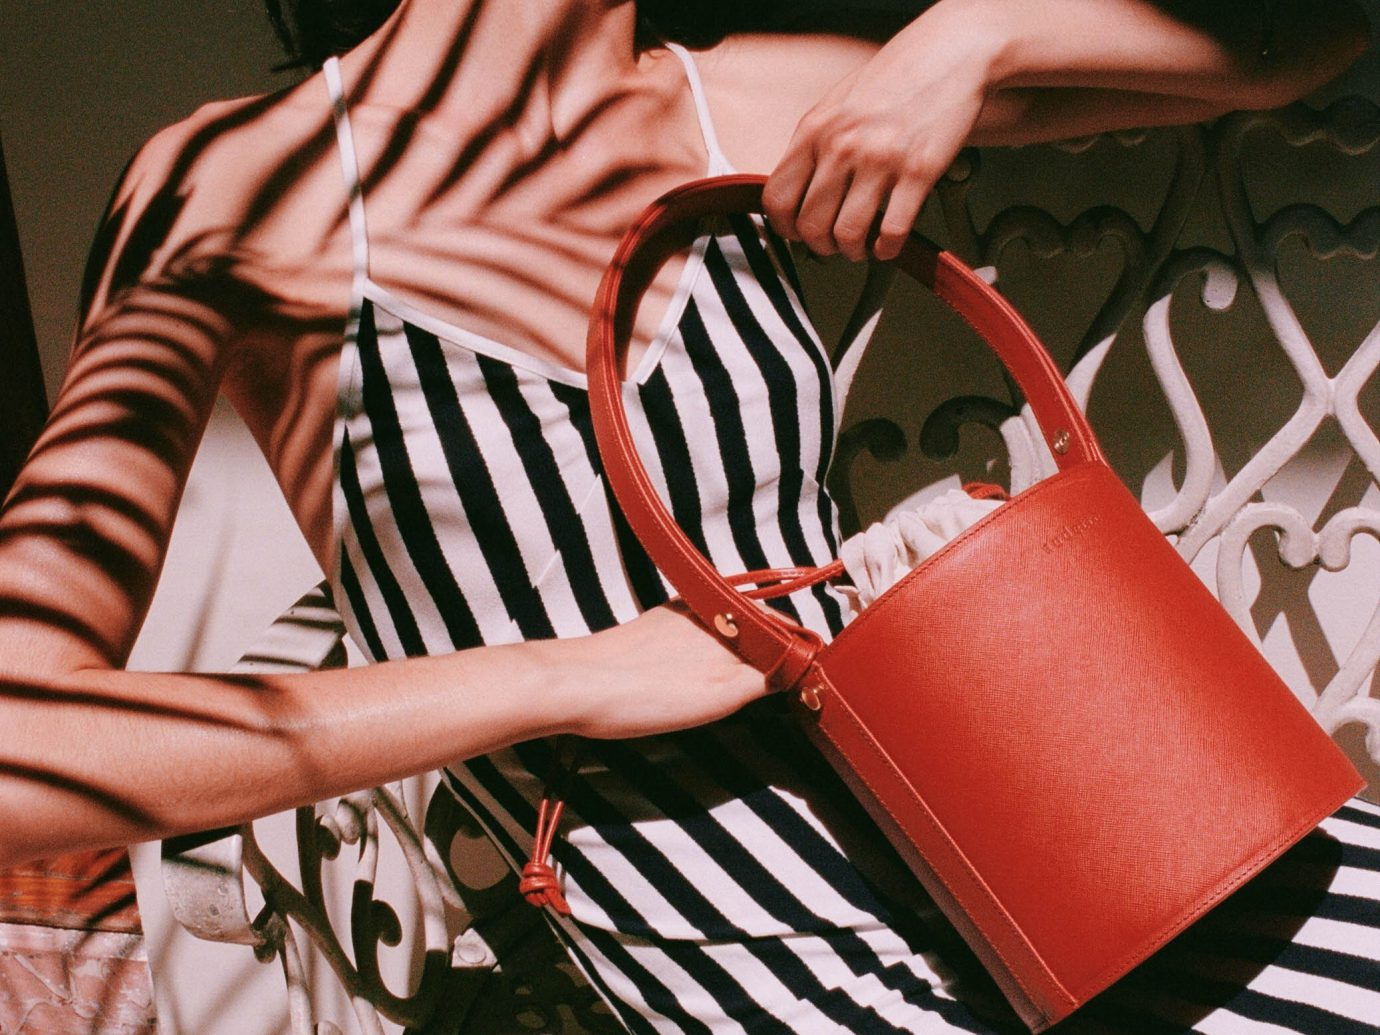 Woman in black and white striped dress holding a red purse with a shadow of a plant on her body